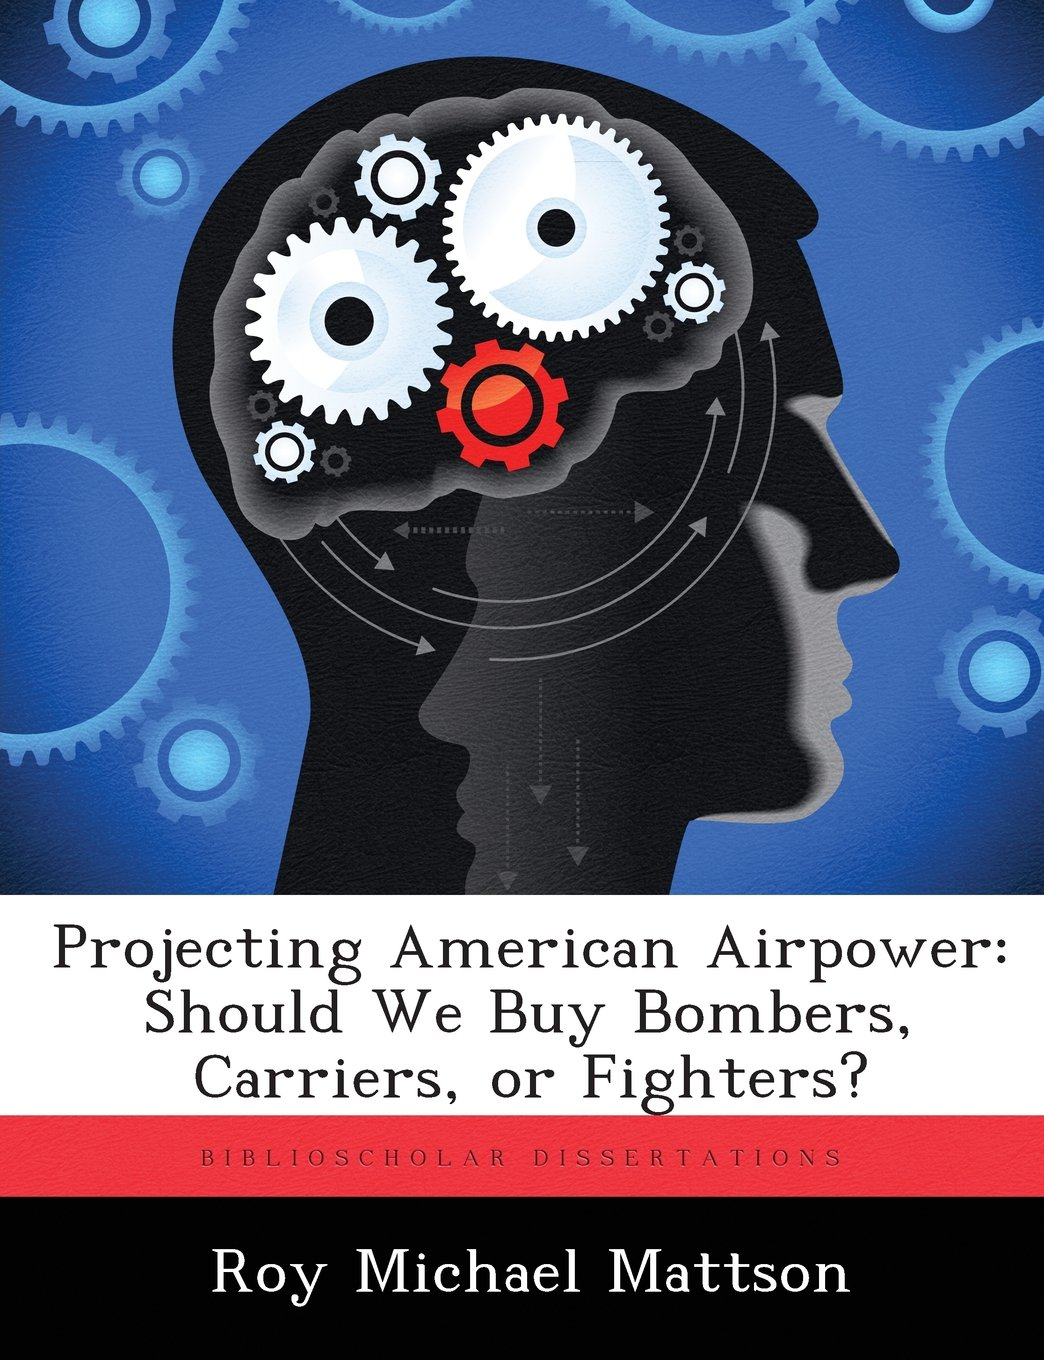 Projecting American Airpower: Should We Buy Bombers, Carriers, or Fighters? PDF